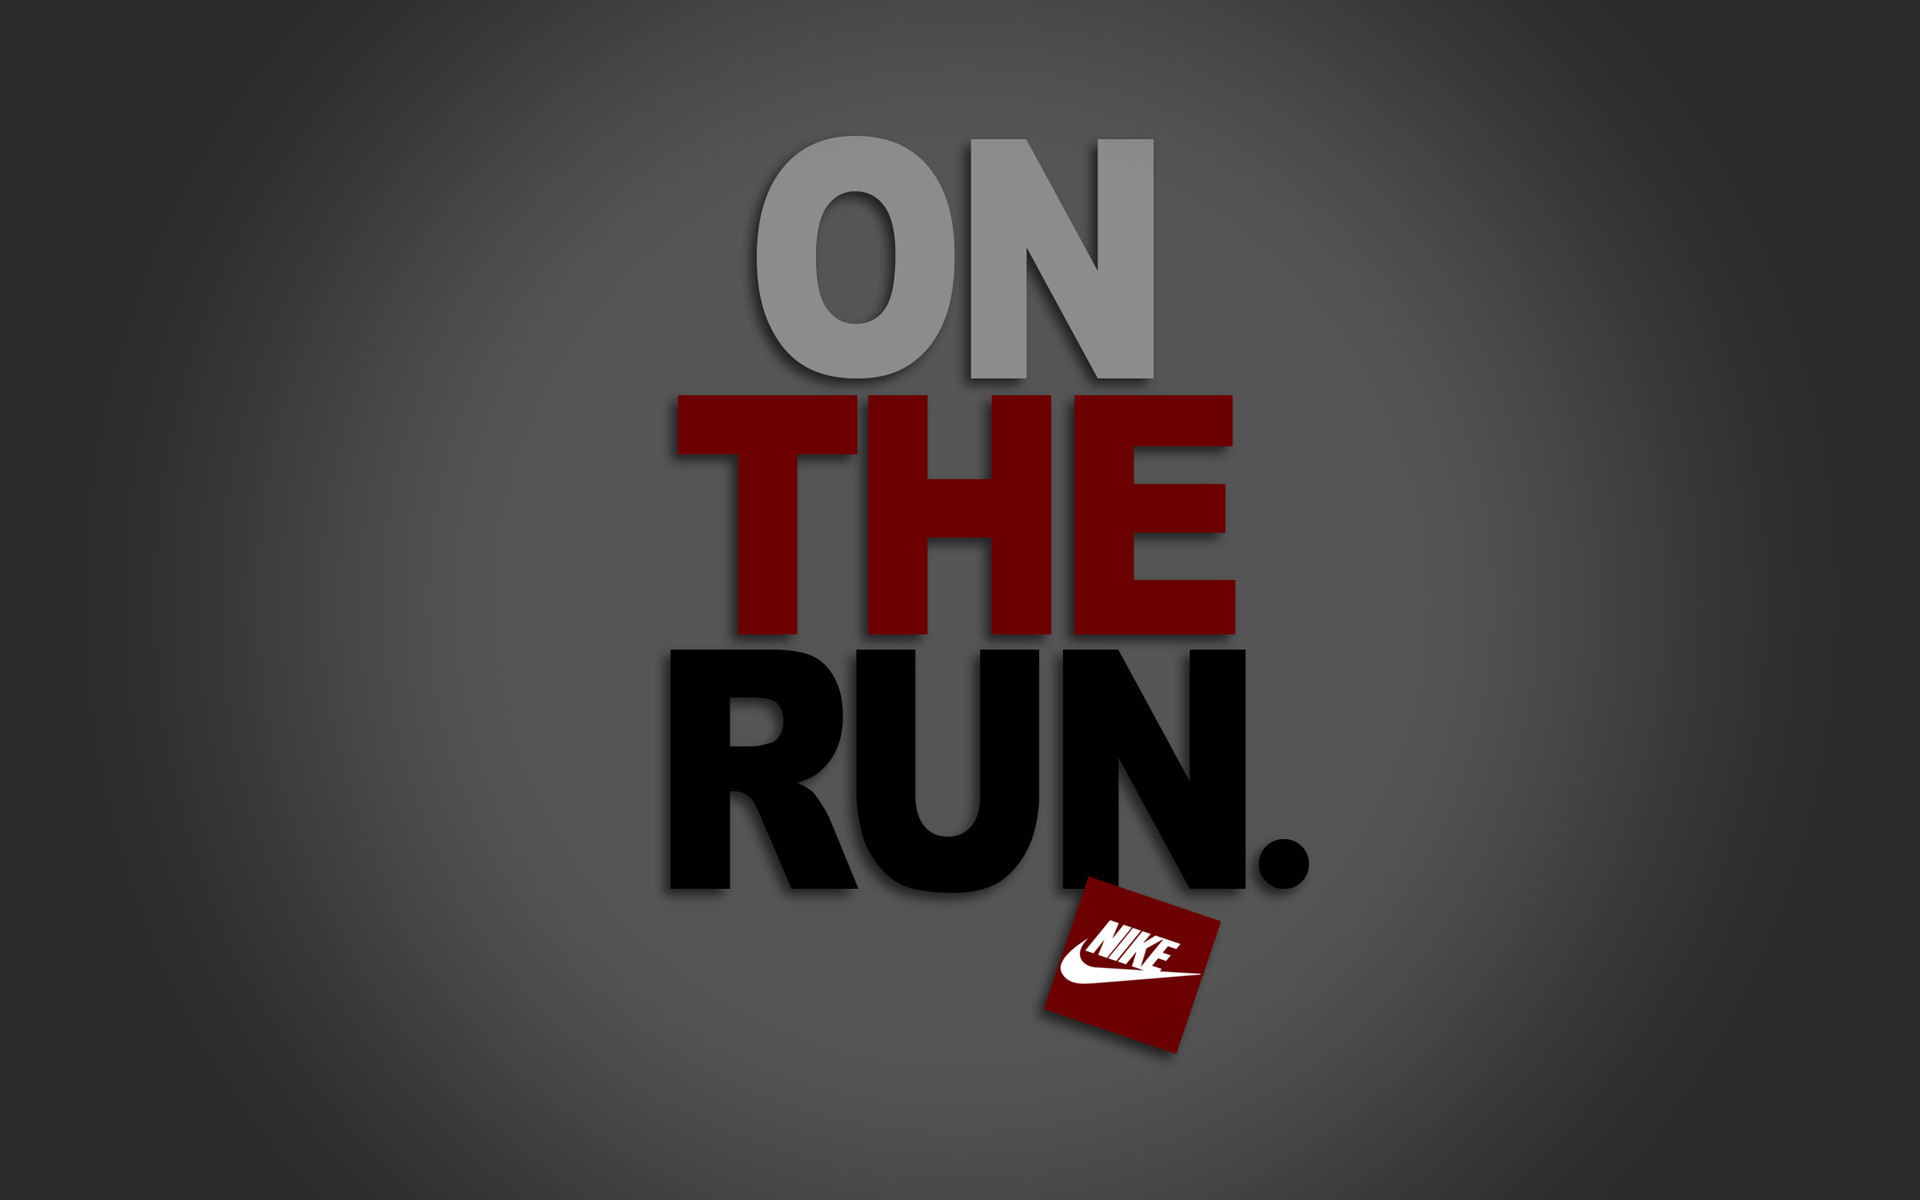 On The Run Nike Hd Wallpaper Background Image 1920x1200 Id